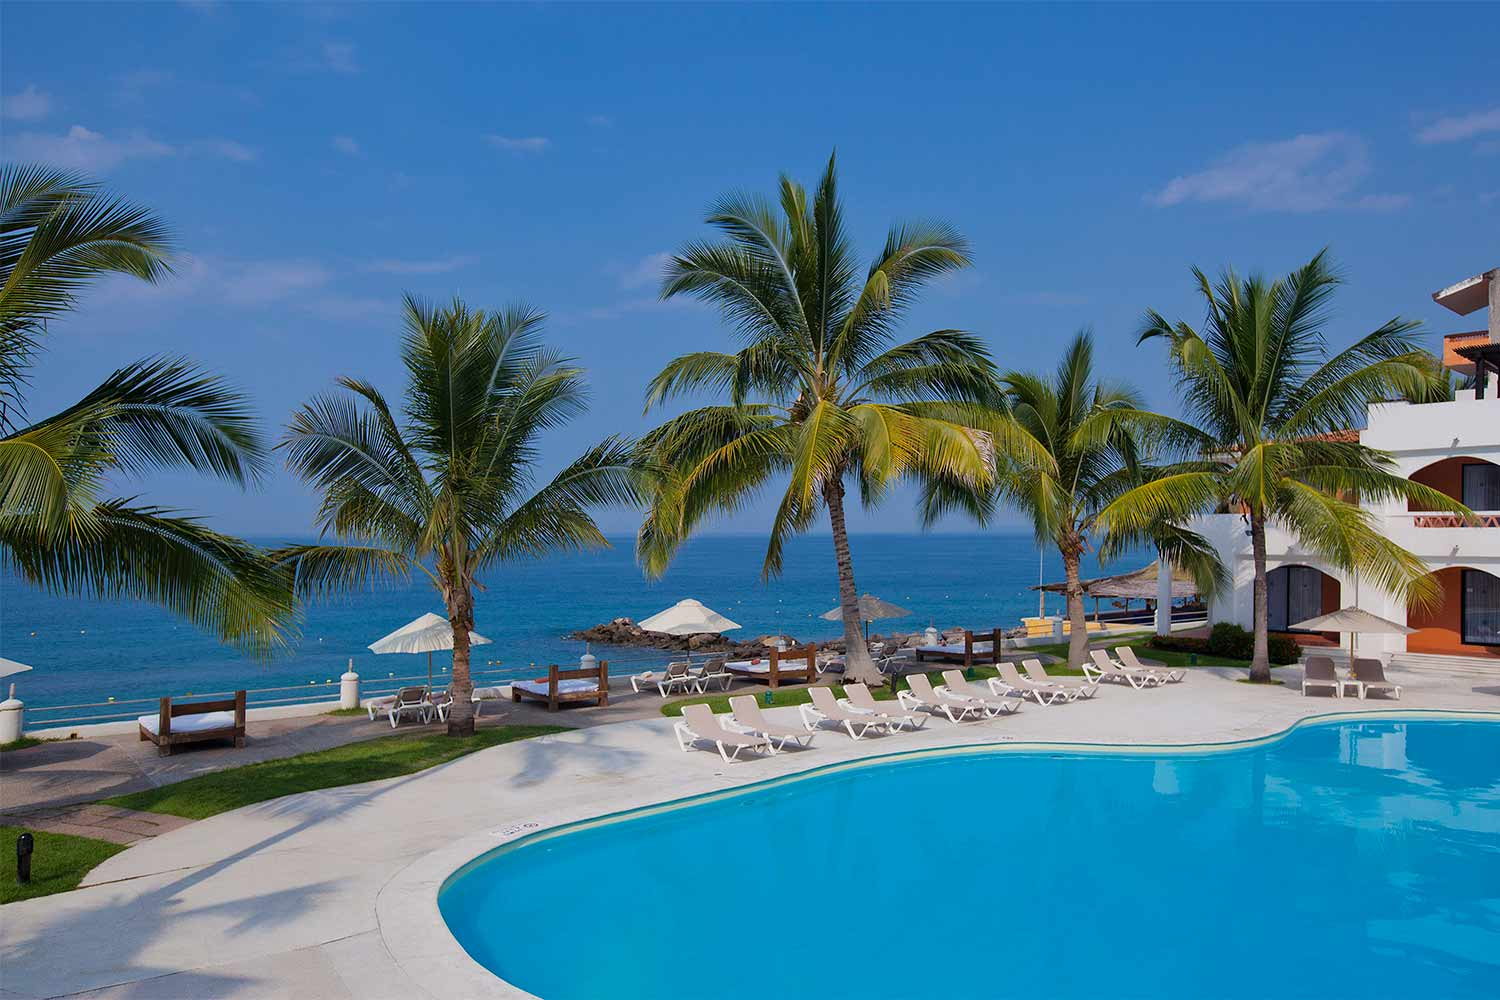 Plaza Pelicanos Club Beach Resort All Inclusive Puerto Vallarta - Puerto vallarta resorts all inclusive